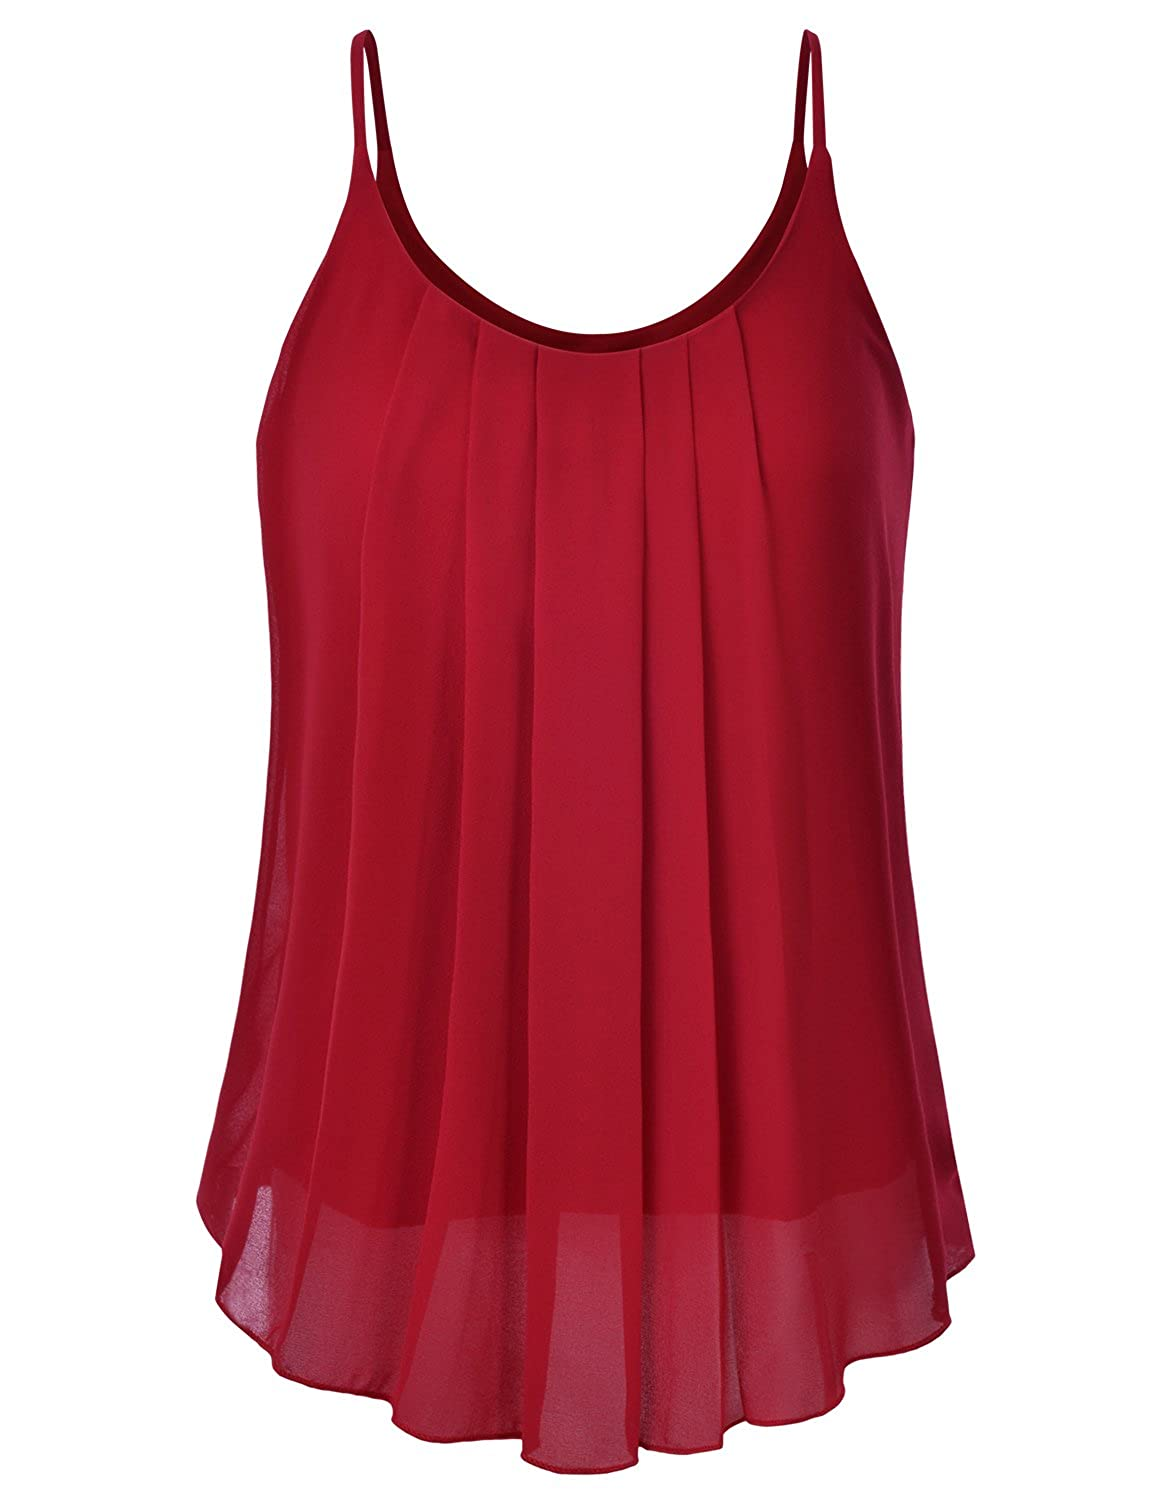 Casual Pleated Cool Chiffon Layered Sleeveless Flowy Cami Tank Tunic Top  Features Flowy Shirt a484d5fe7